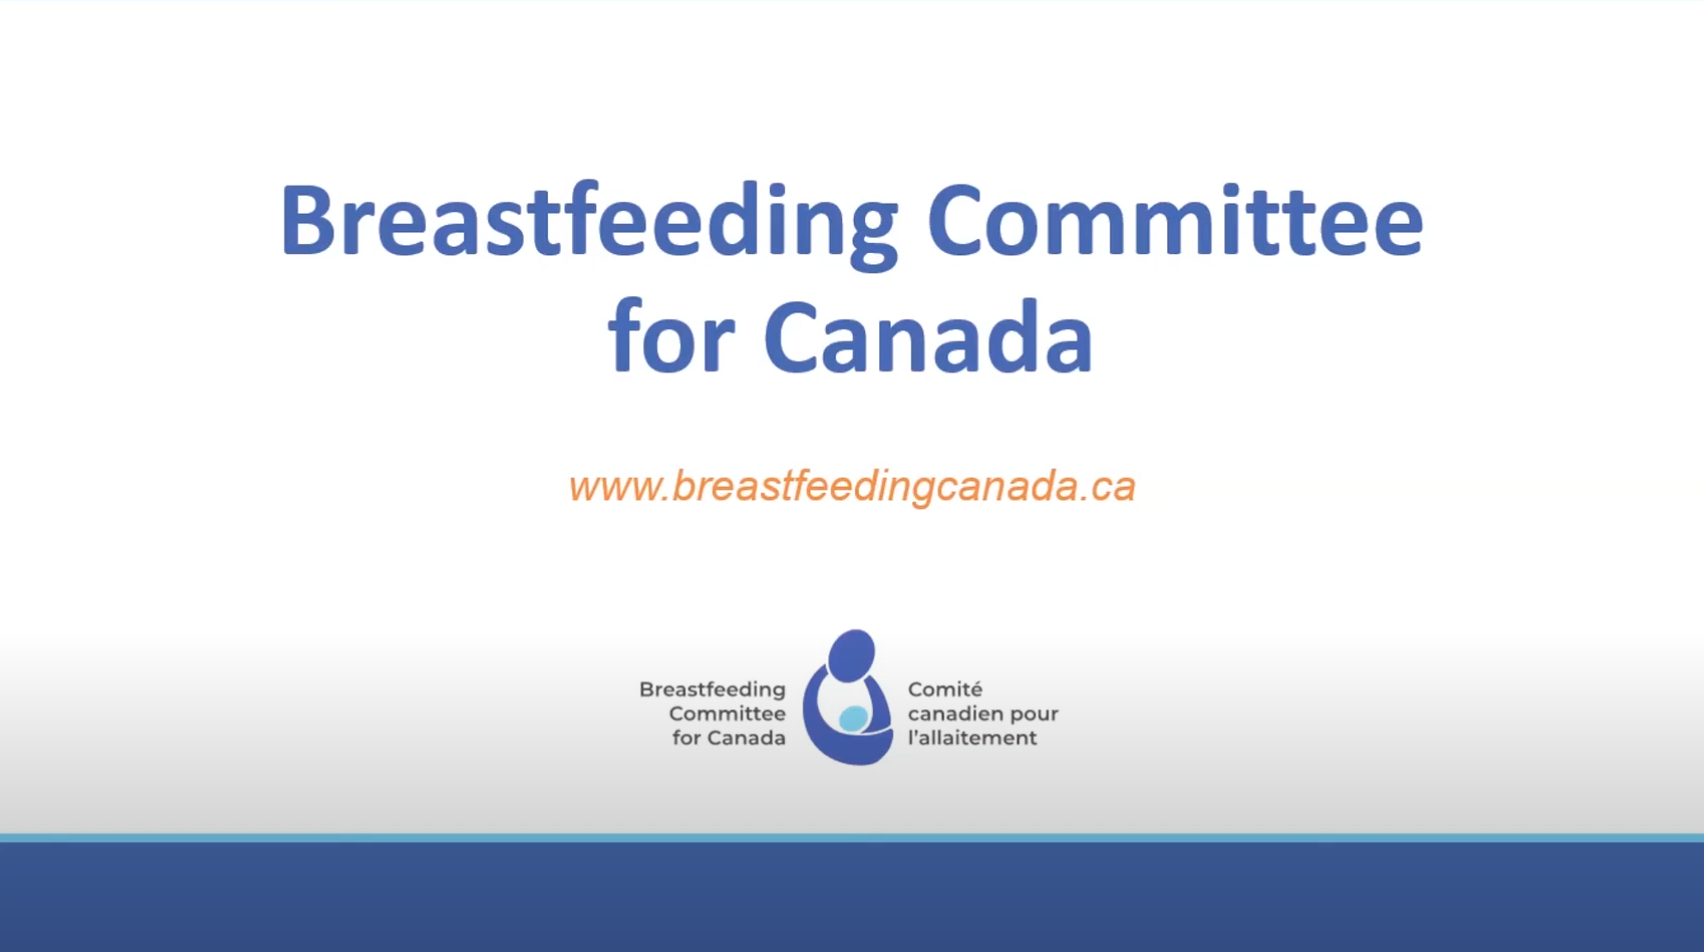 Breastfeeding Committee for Canada